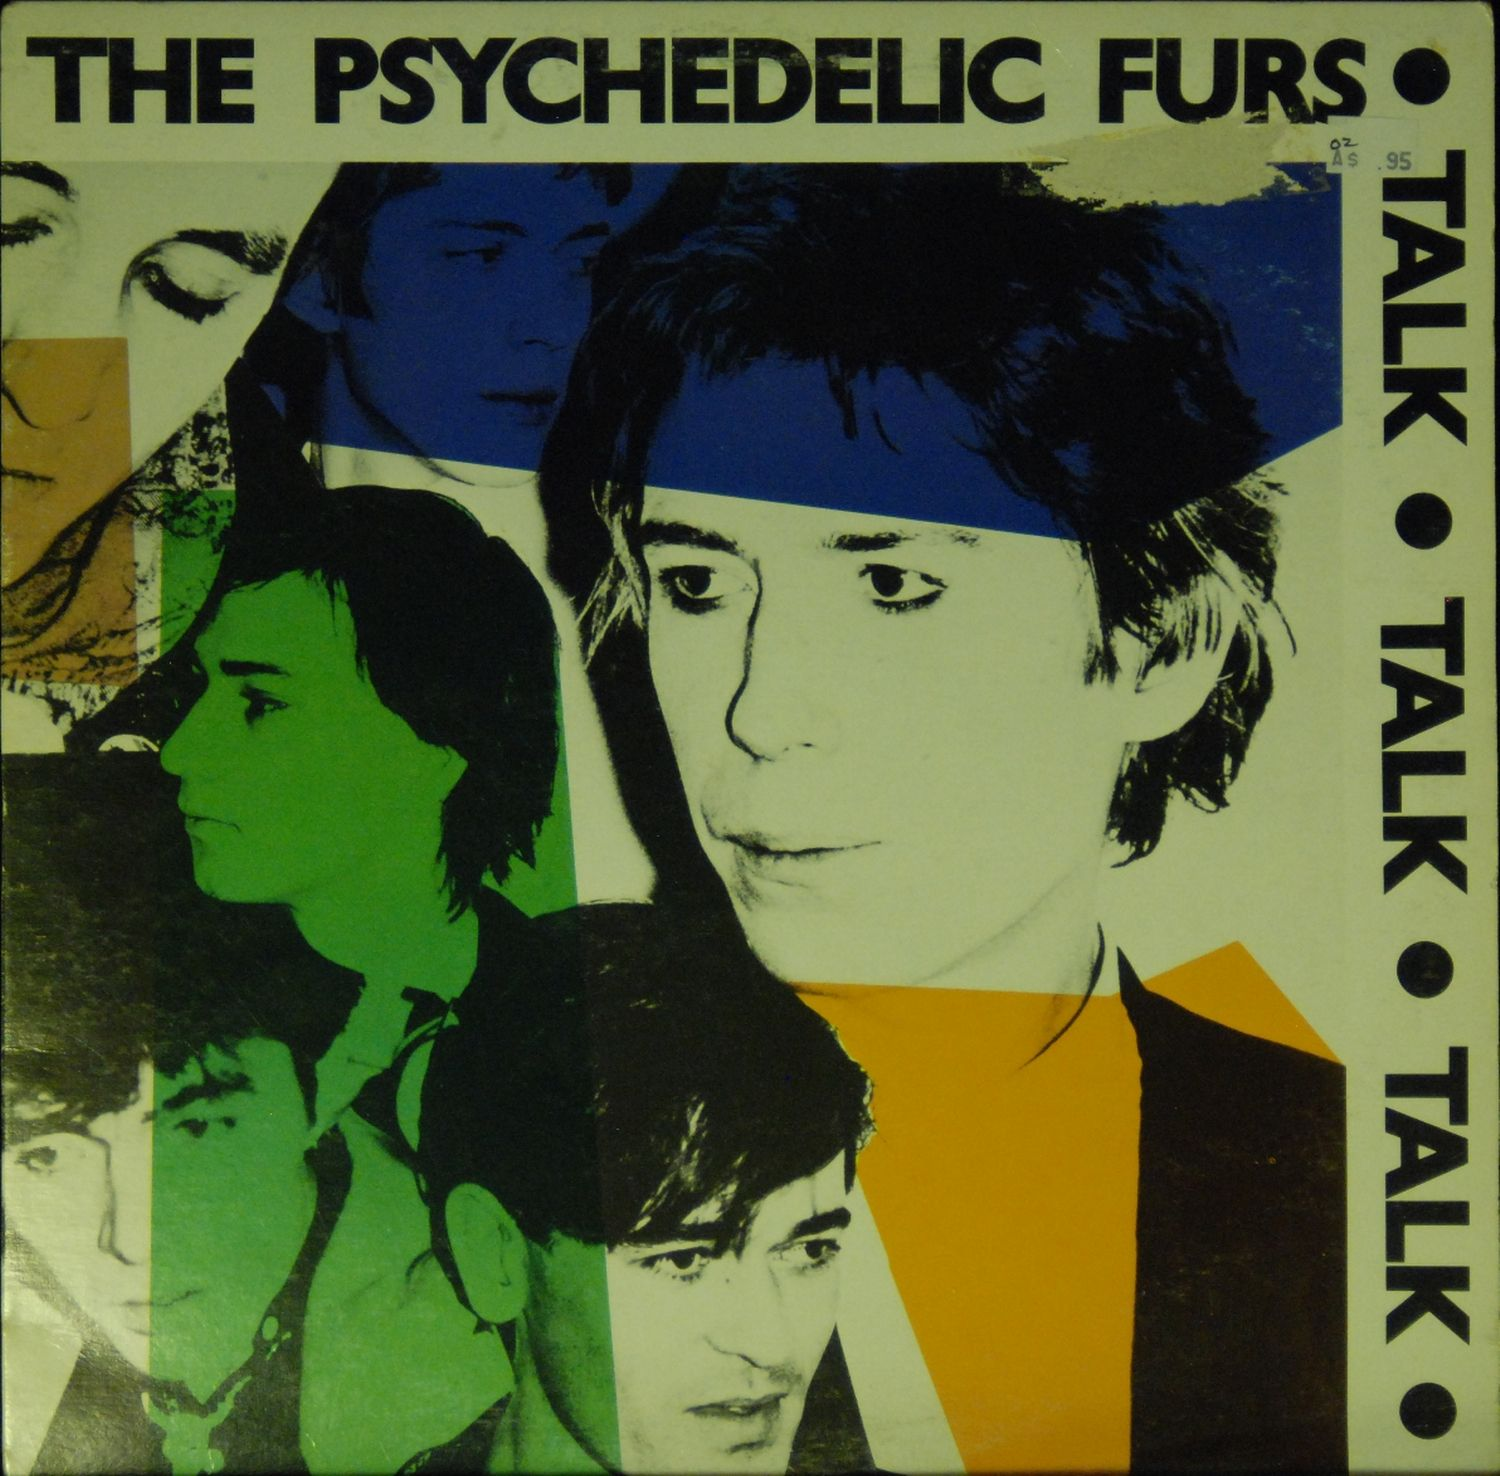 Psychedelic Furs Album Covers Google Search The Psychedelic Furs Album Cover Art Album Covers